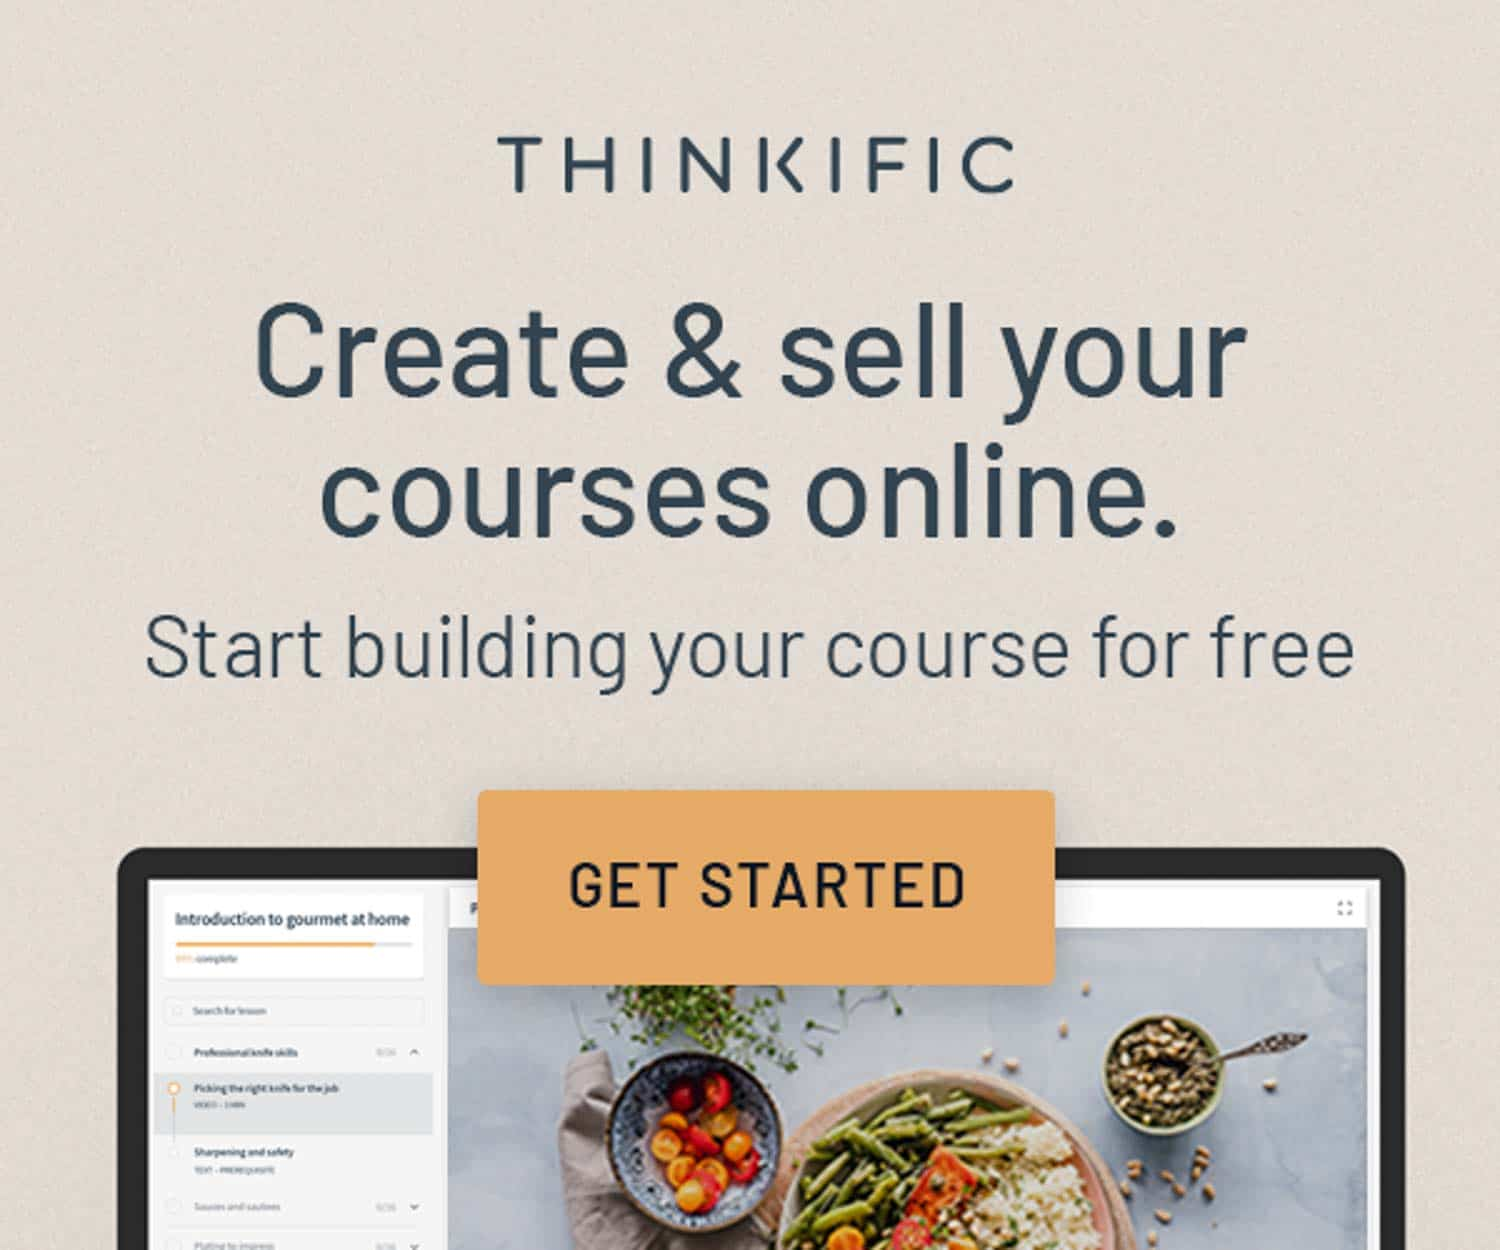 create and sell your courses online banner